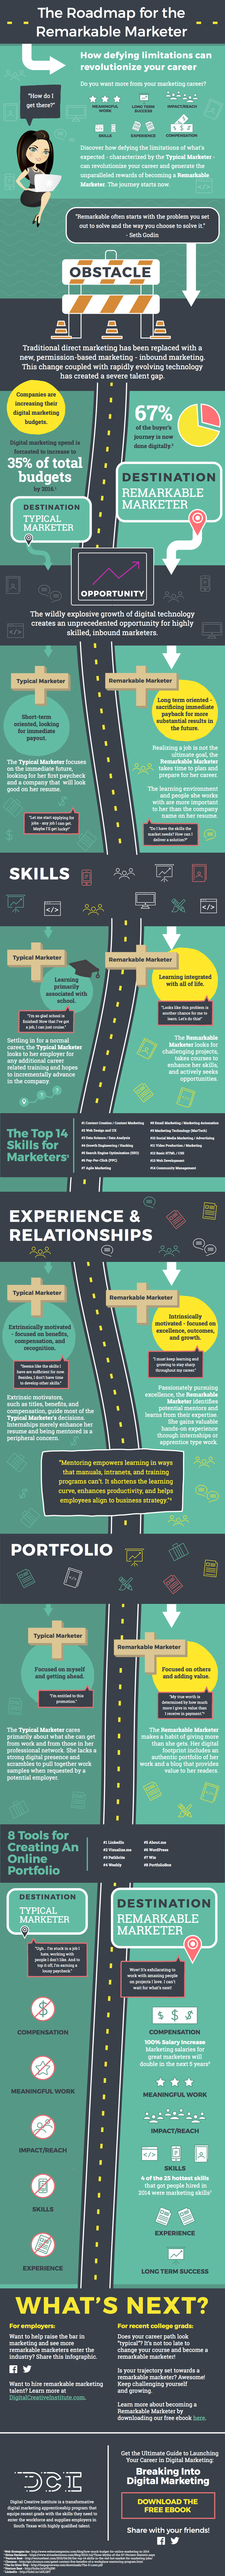 The Roadmap for the Remarkable Marketer